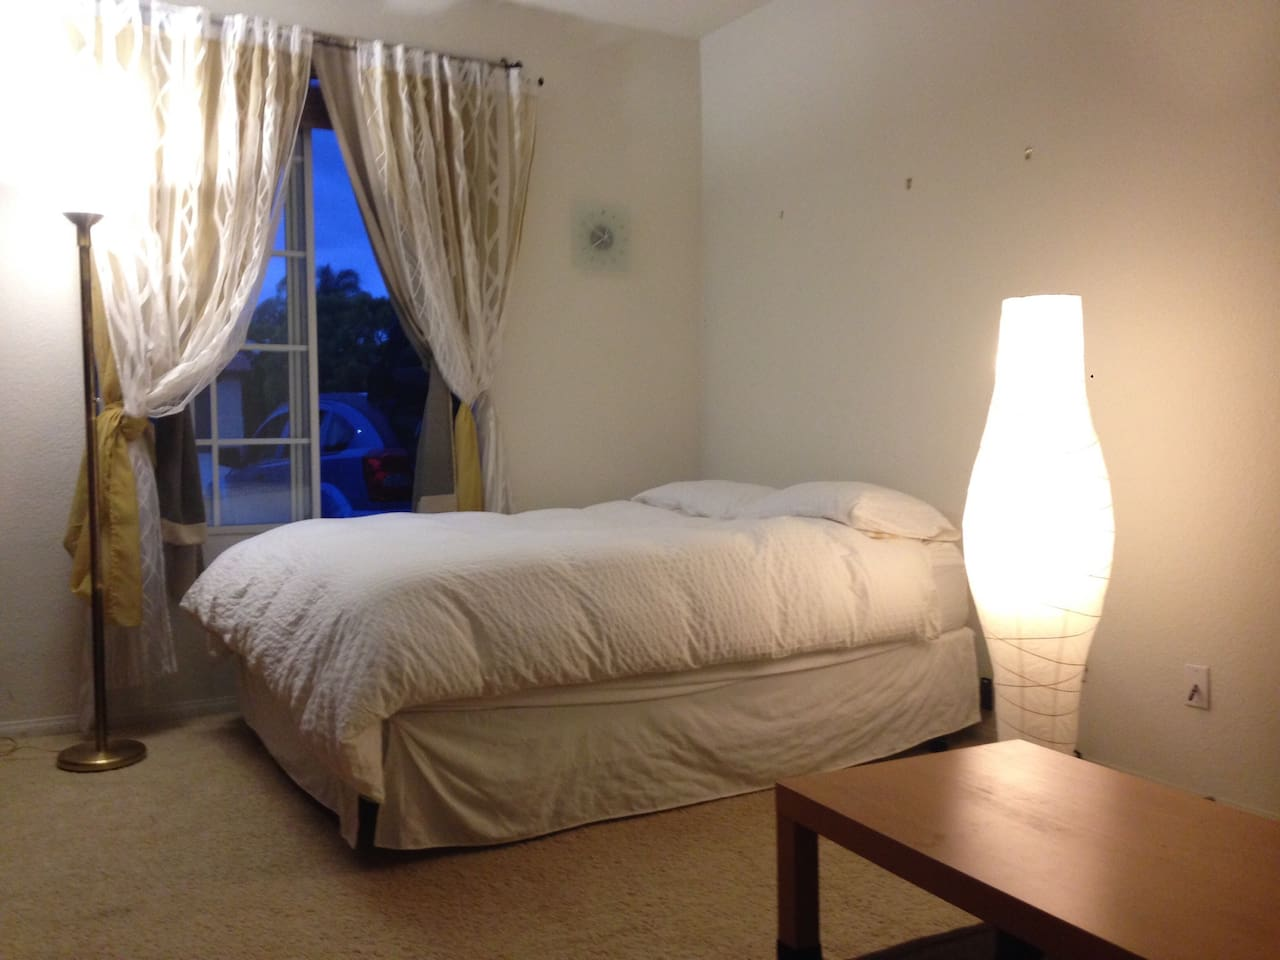 The queen bed is comfortable, and there are blinds and curtains to help you sleep.